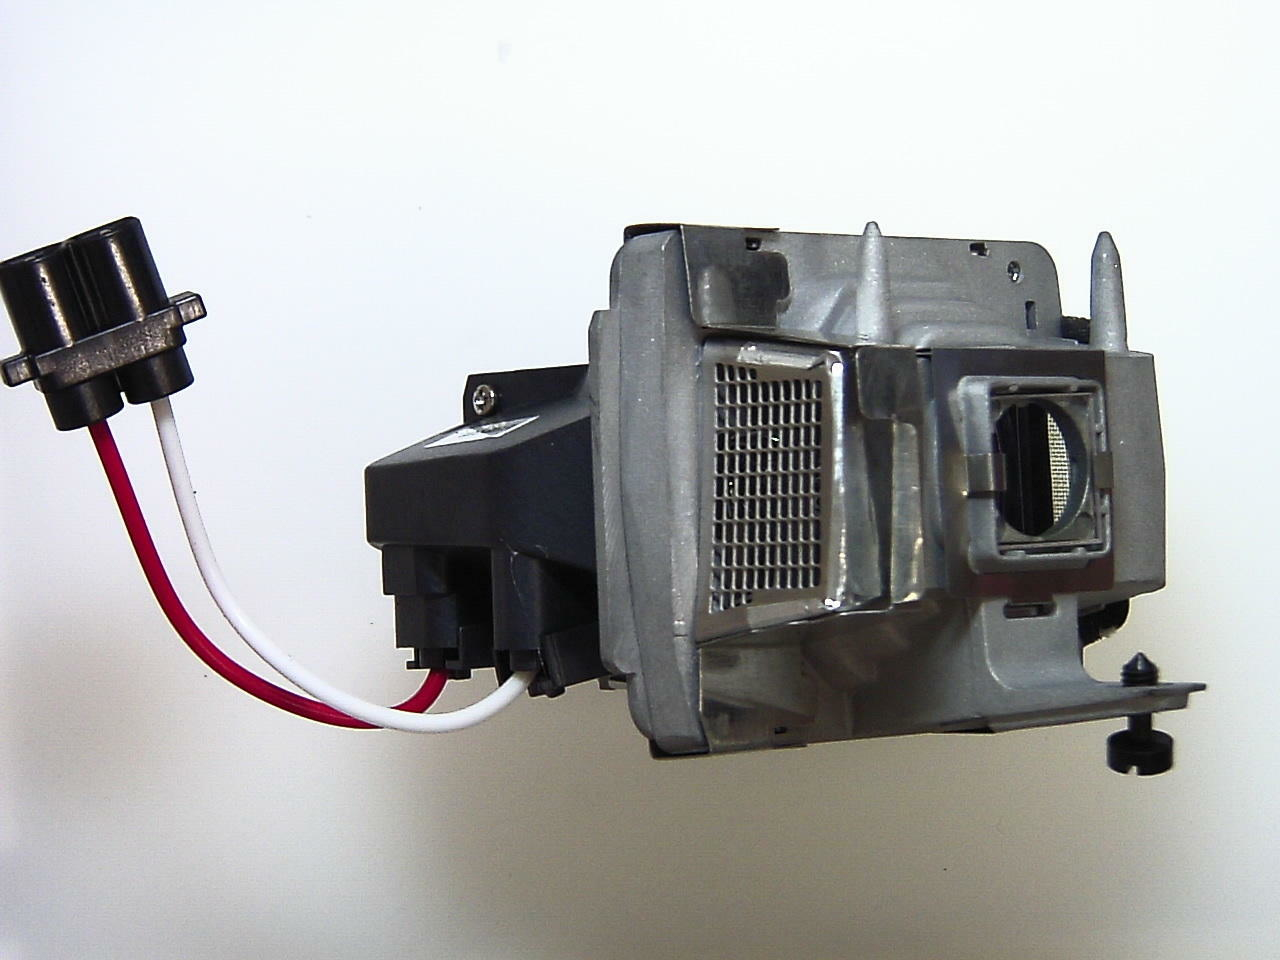 V7 Projector Lamp for selected projectors by ASK, INFOCUS